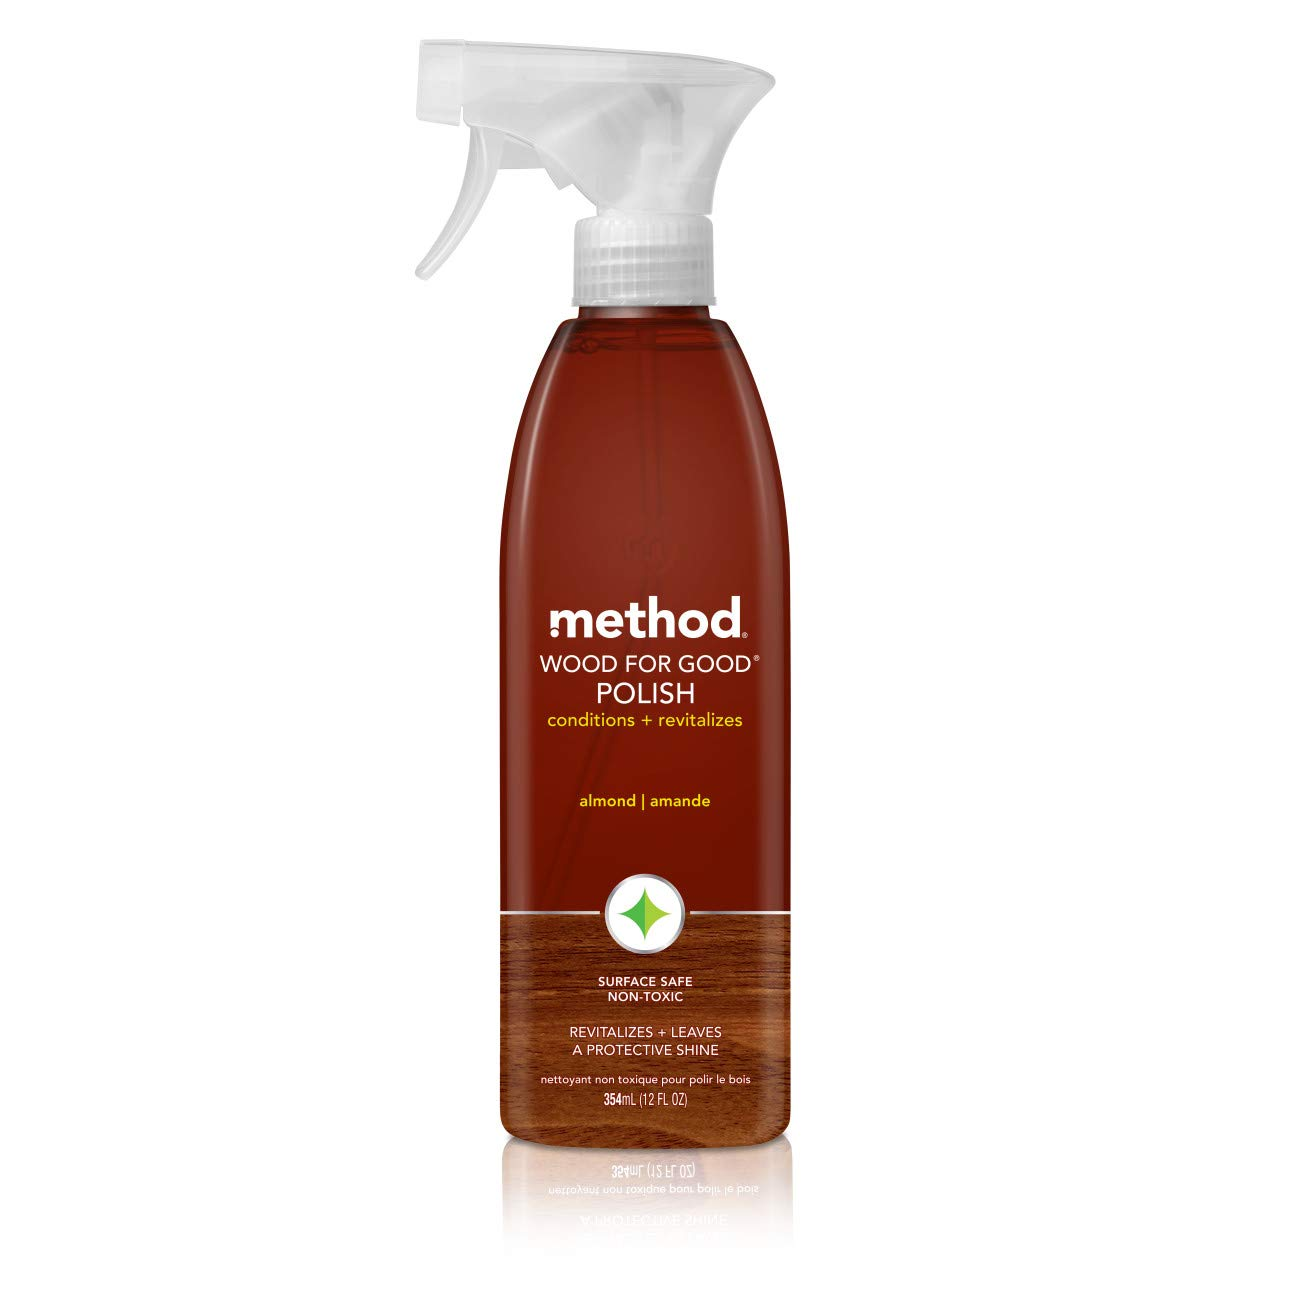 Method Wood for Good Polish, Wood Cleaner, Almond, 12 Ounce (Pack 6) by Method